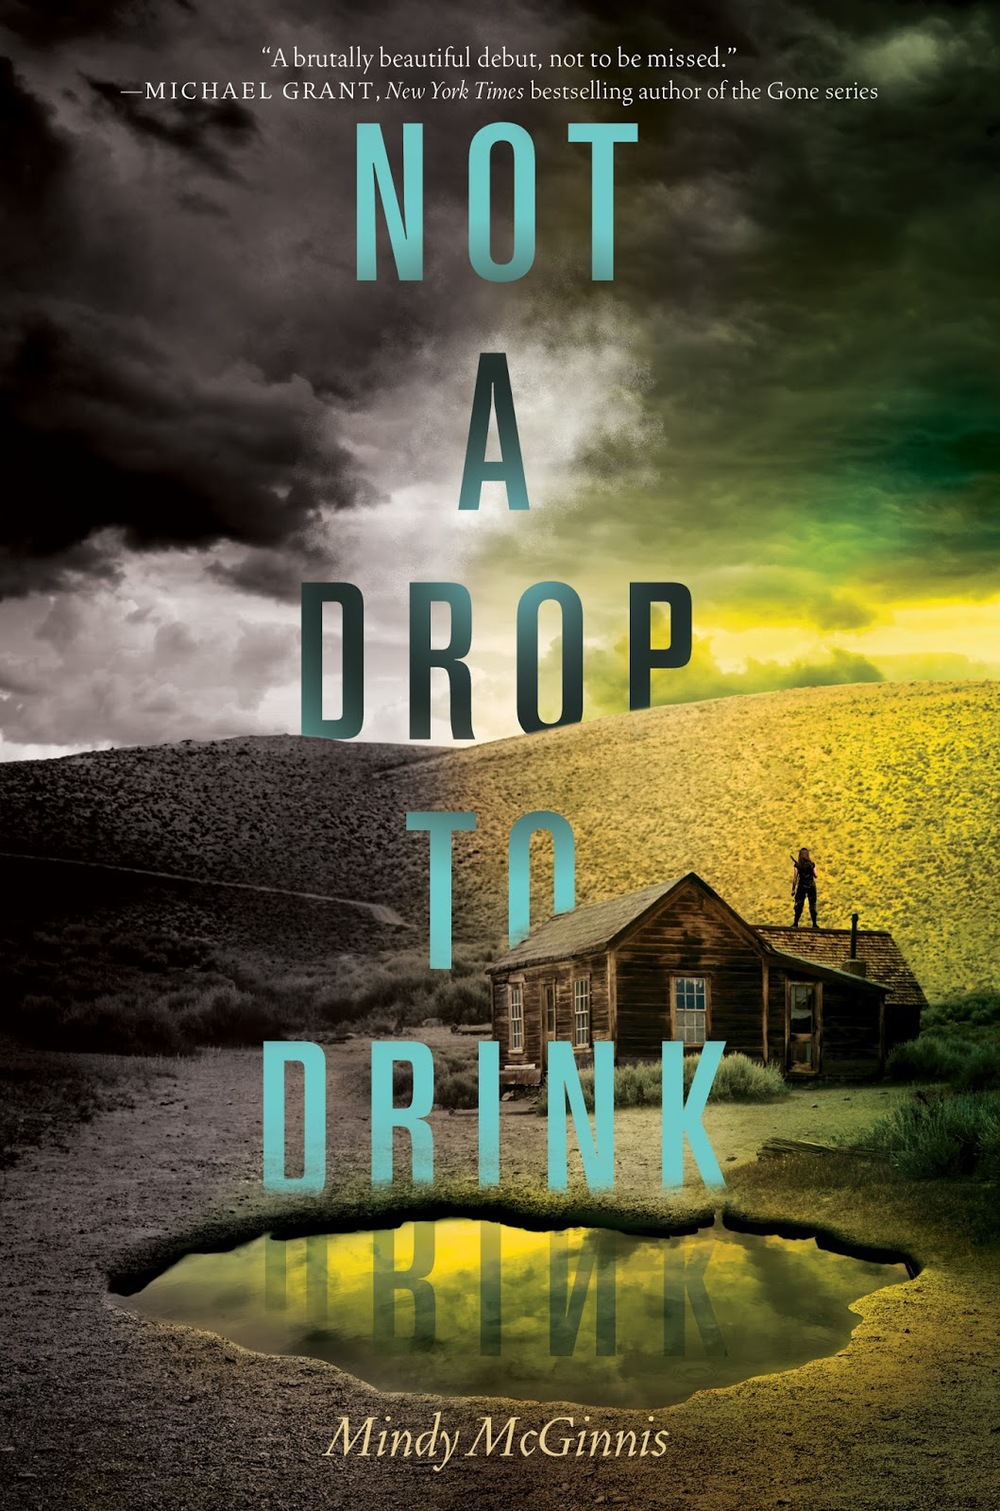 Not a Drop to Drink by Mindy McGinnis Amazon | Goodreads